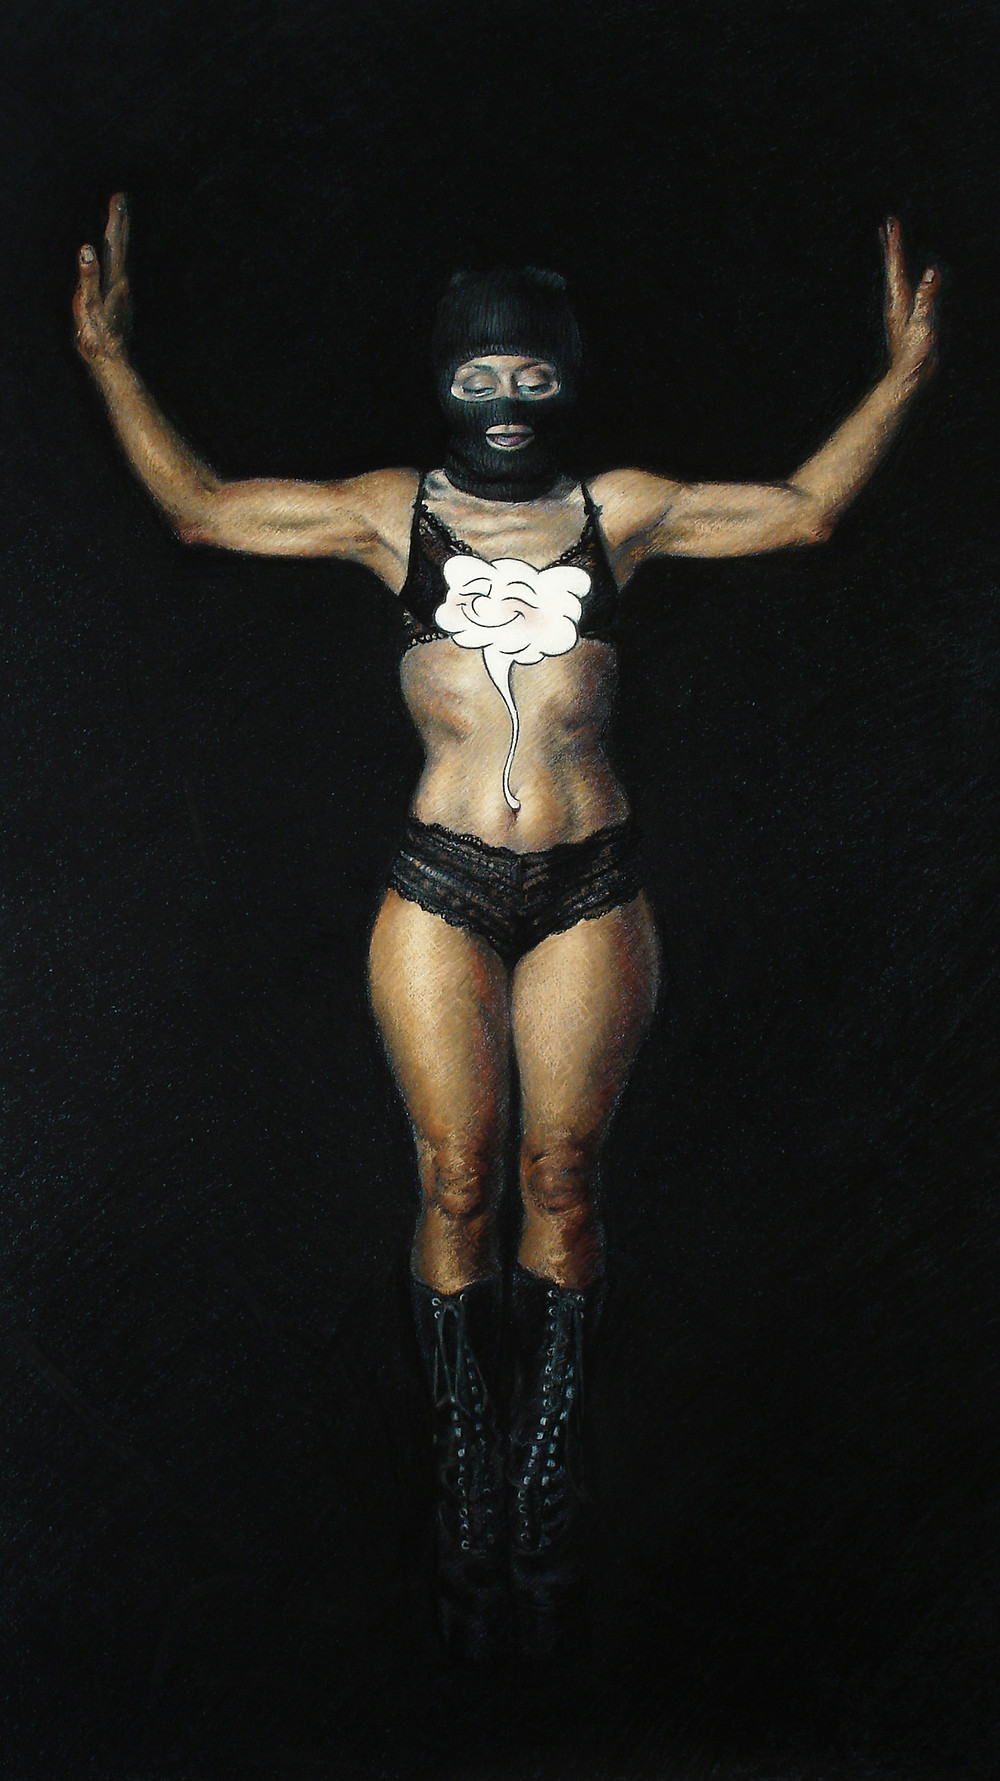 The Descension is a pastel drawing by Isis Rodriguez depicting a masked woman descending into darkness with a cartoon.